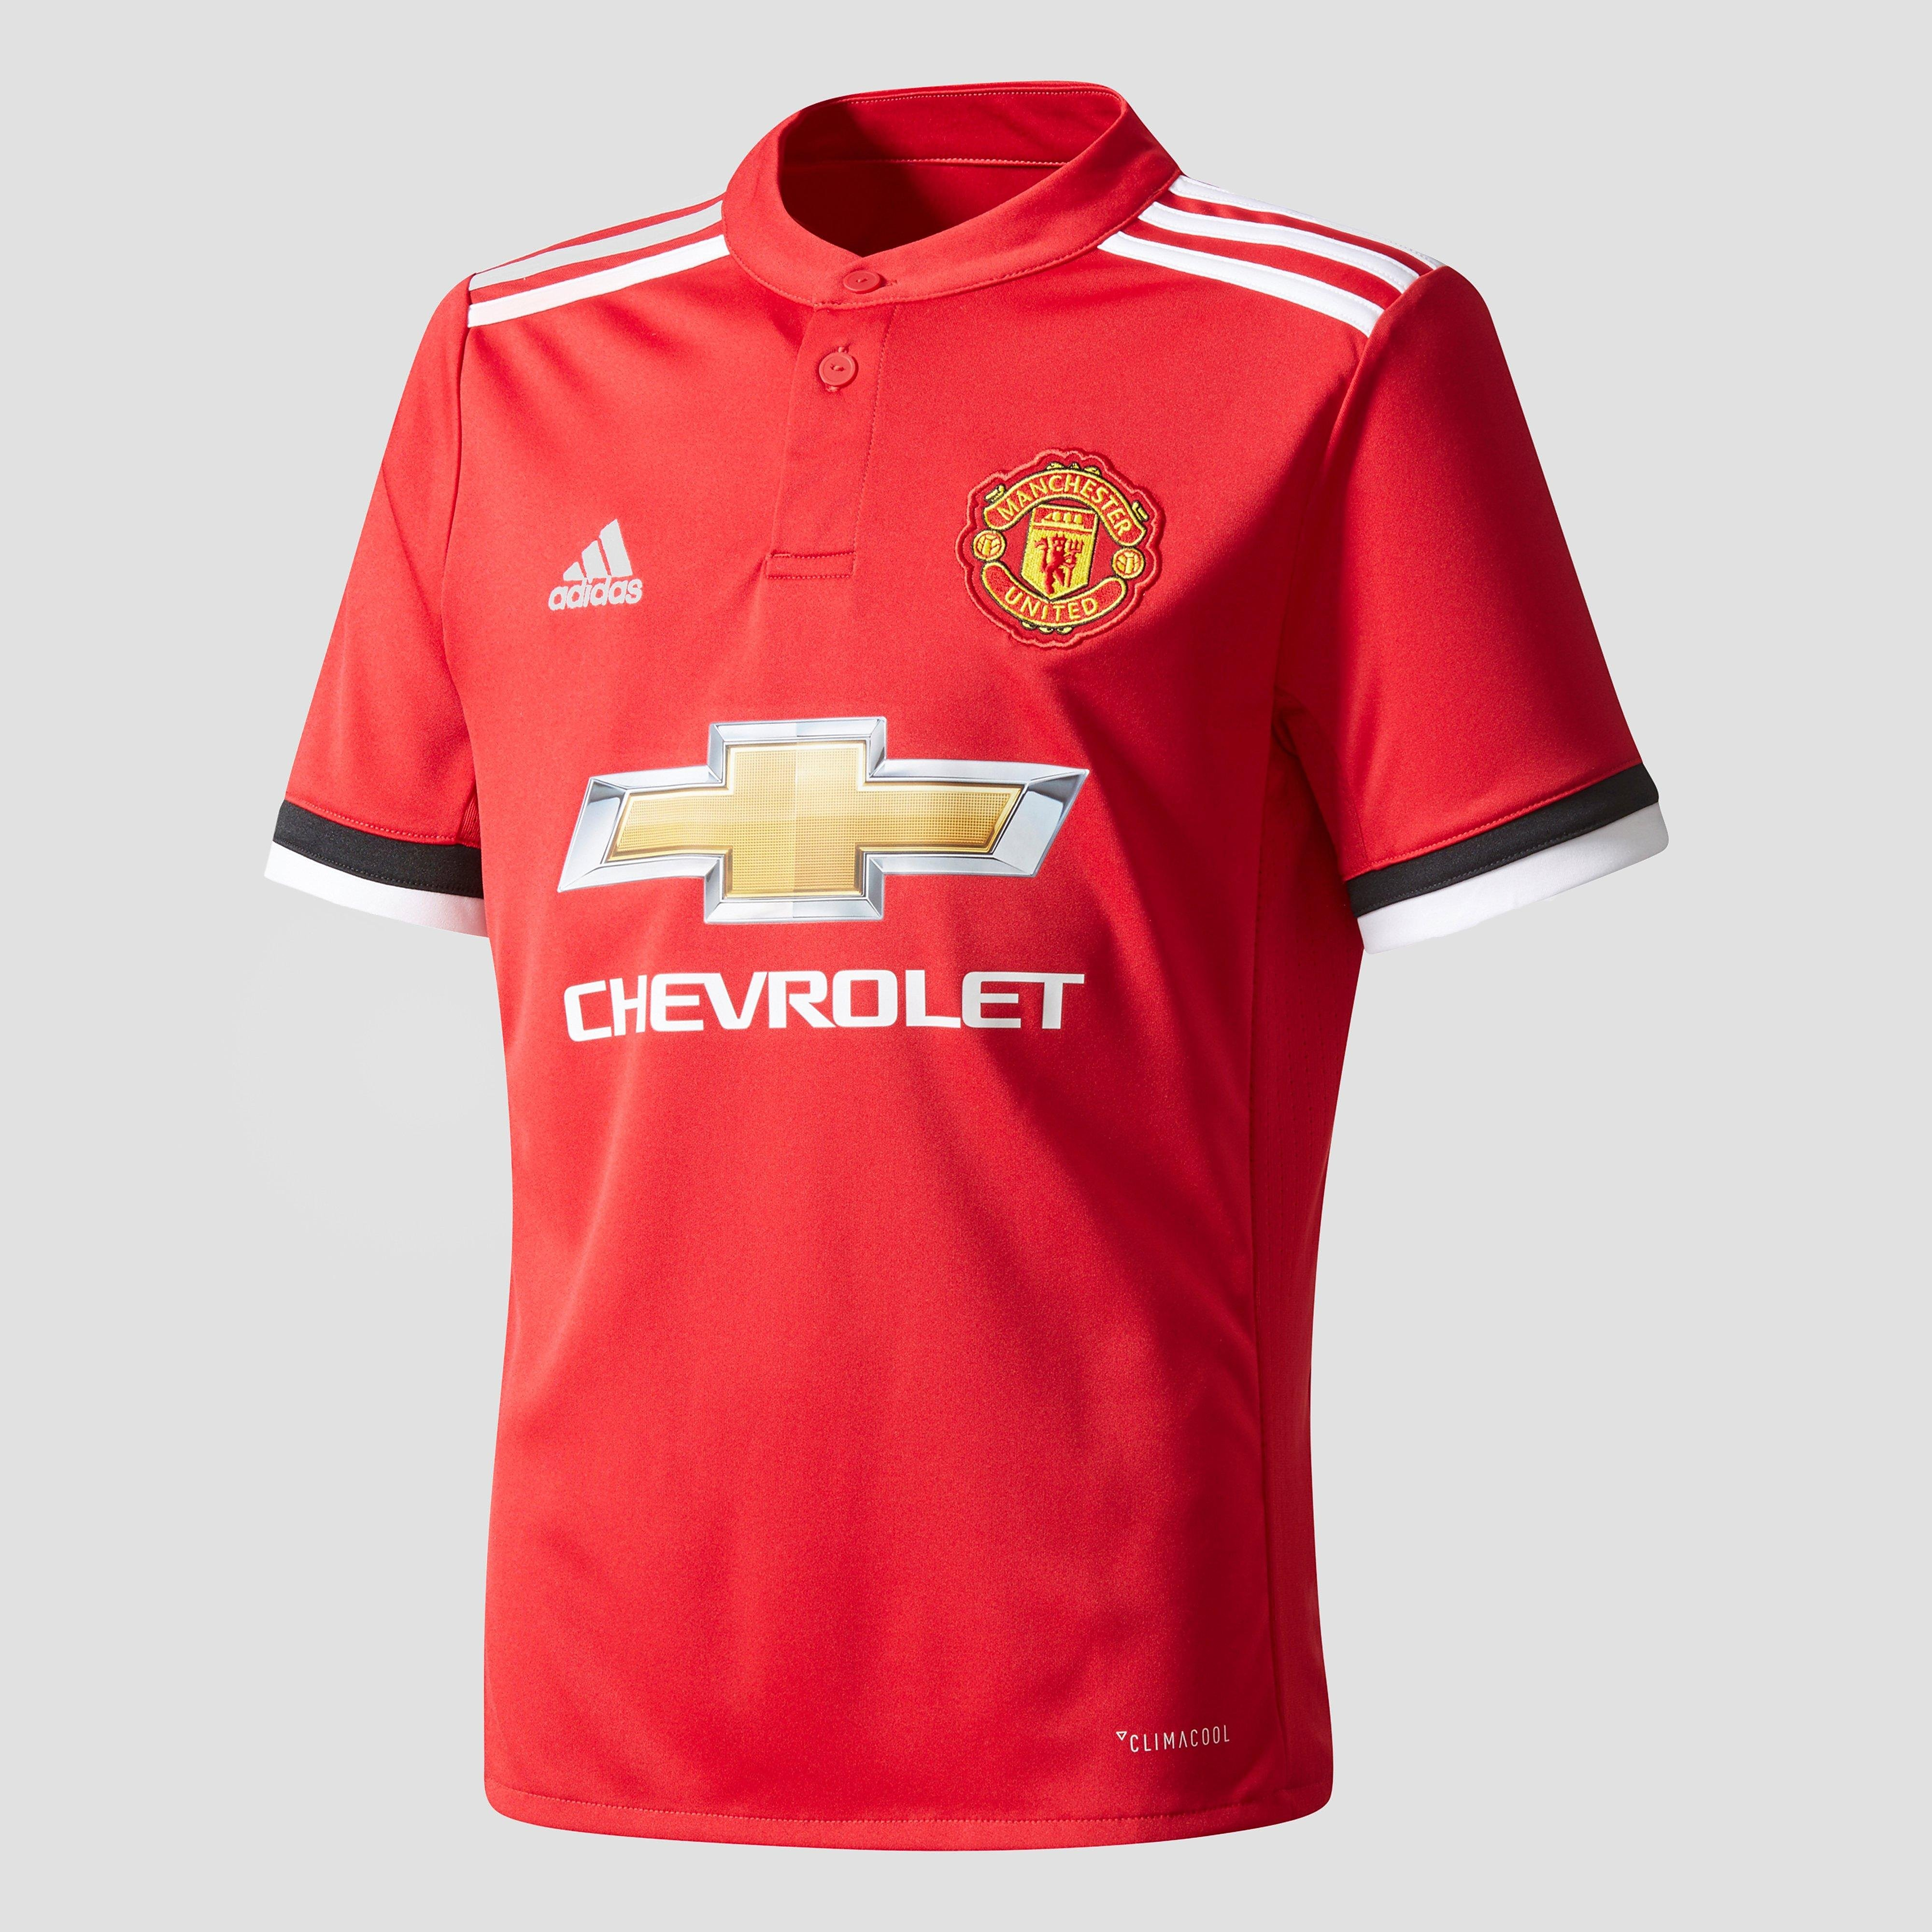 ADIDAS MANCHESTER UNITED FC THUISSHIRT 17/18 ROOD/WIT KINDEREN